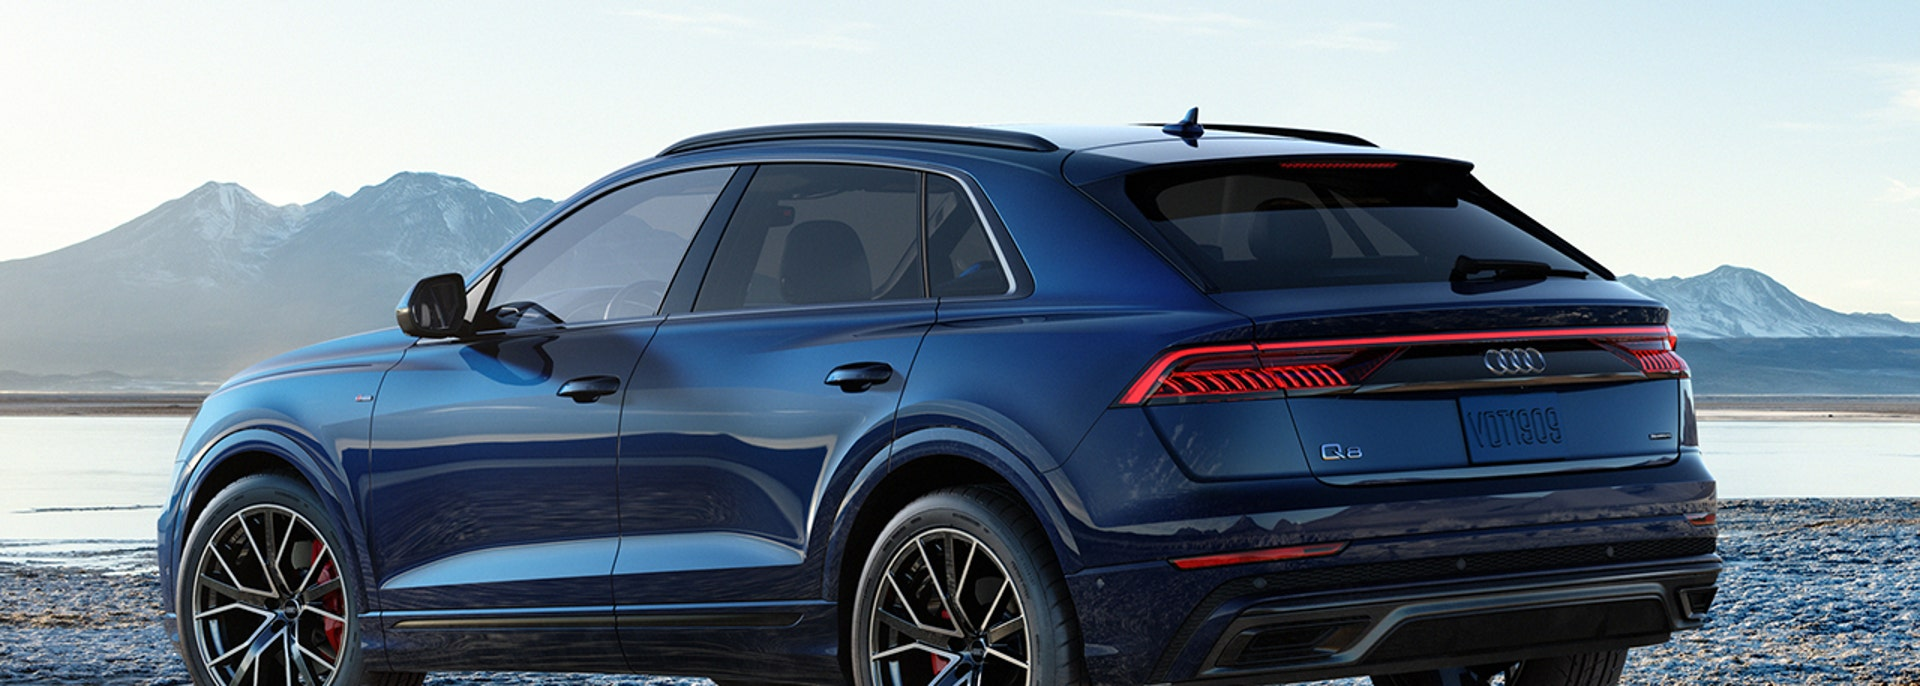 2019 Audi Q8 Test Drive: The SUV That Can Avoid Red Lights